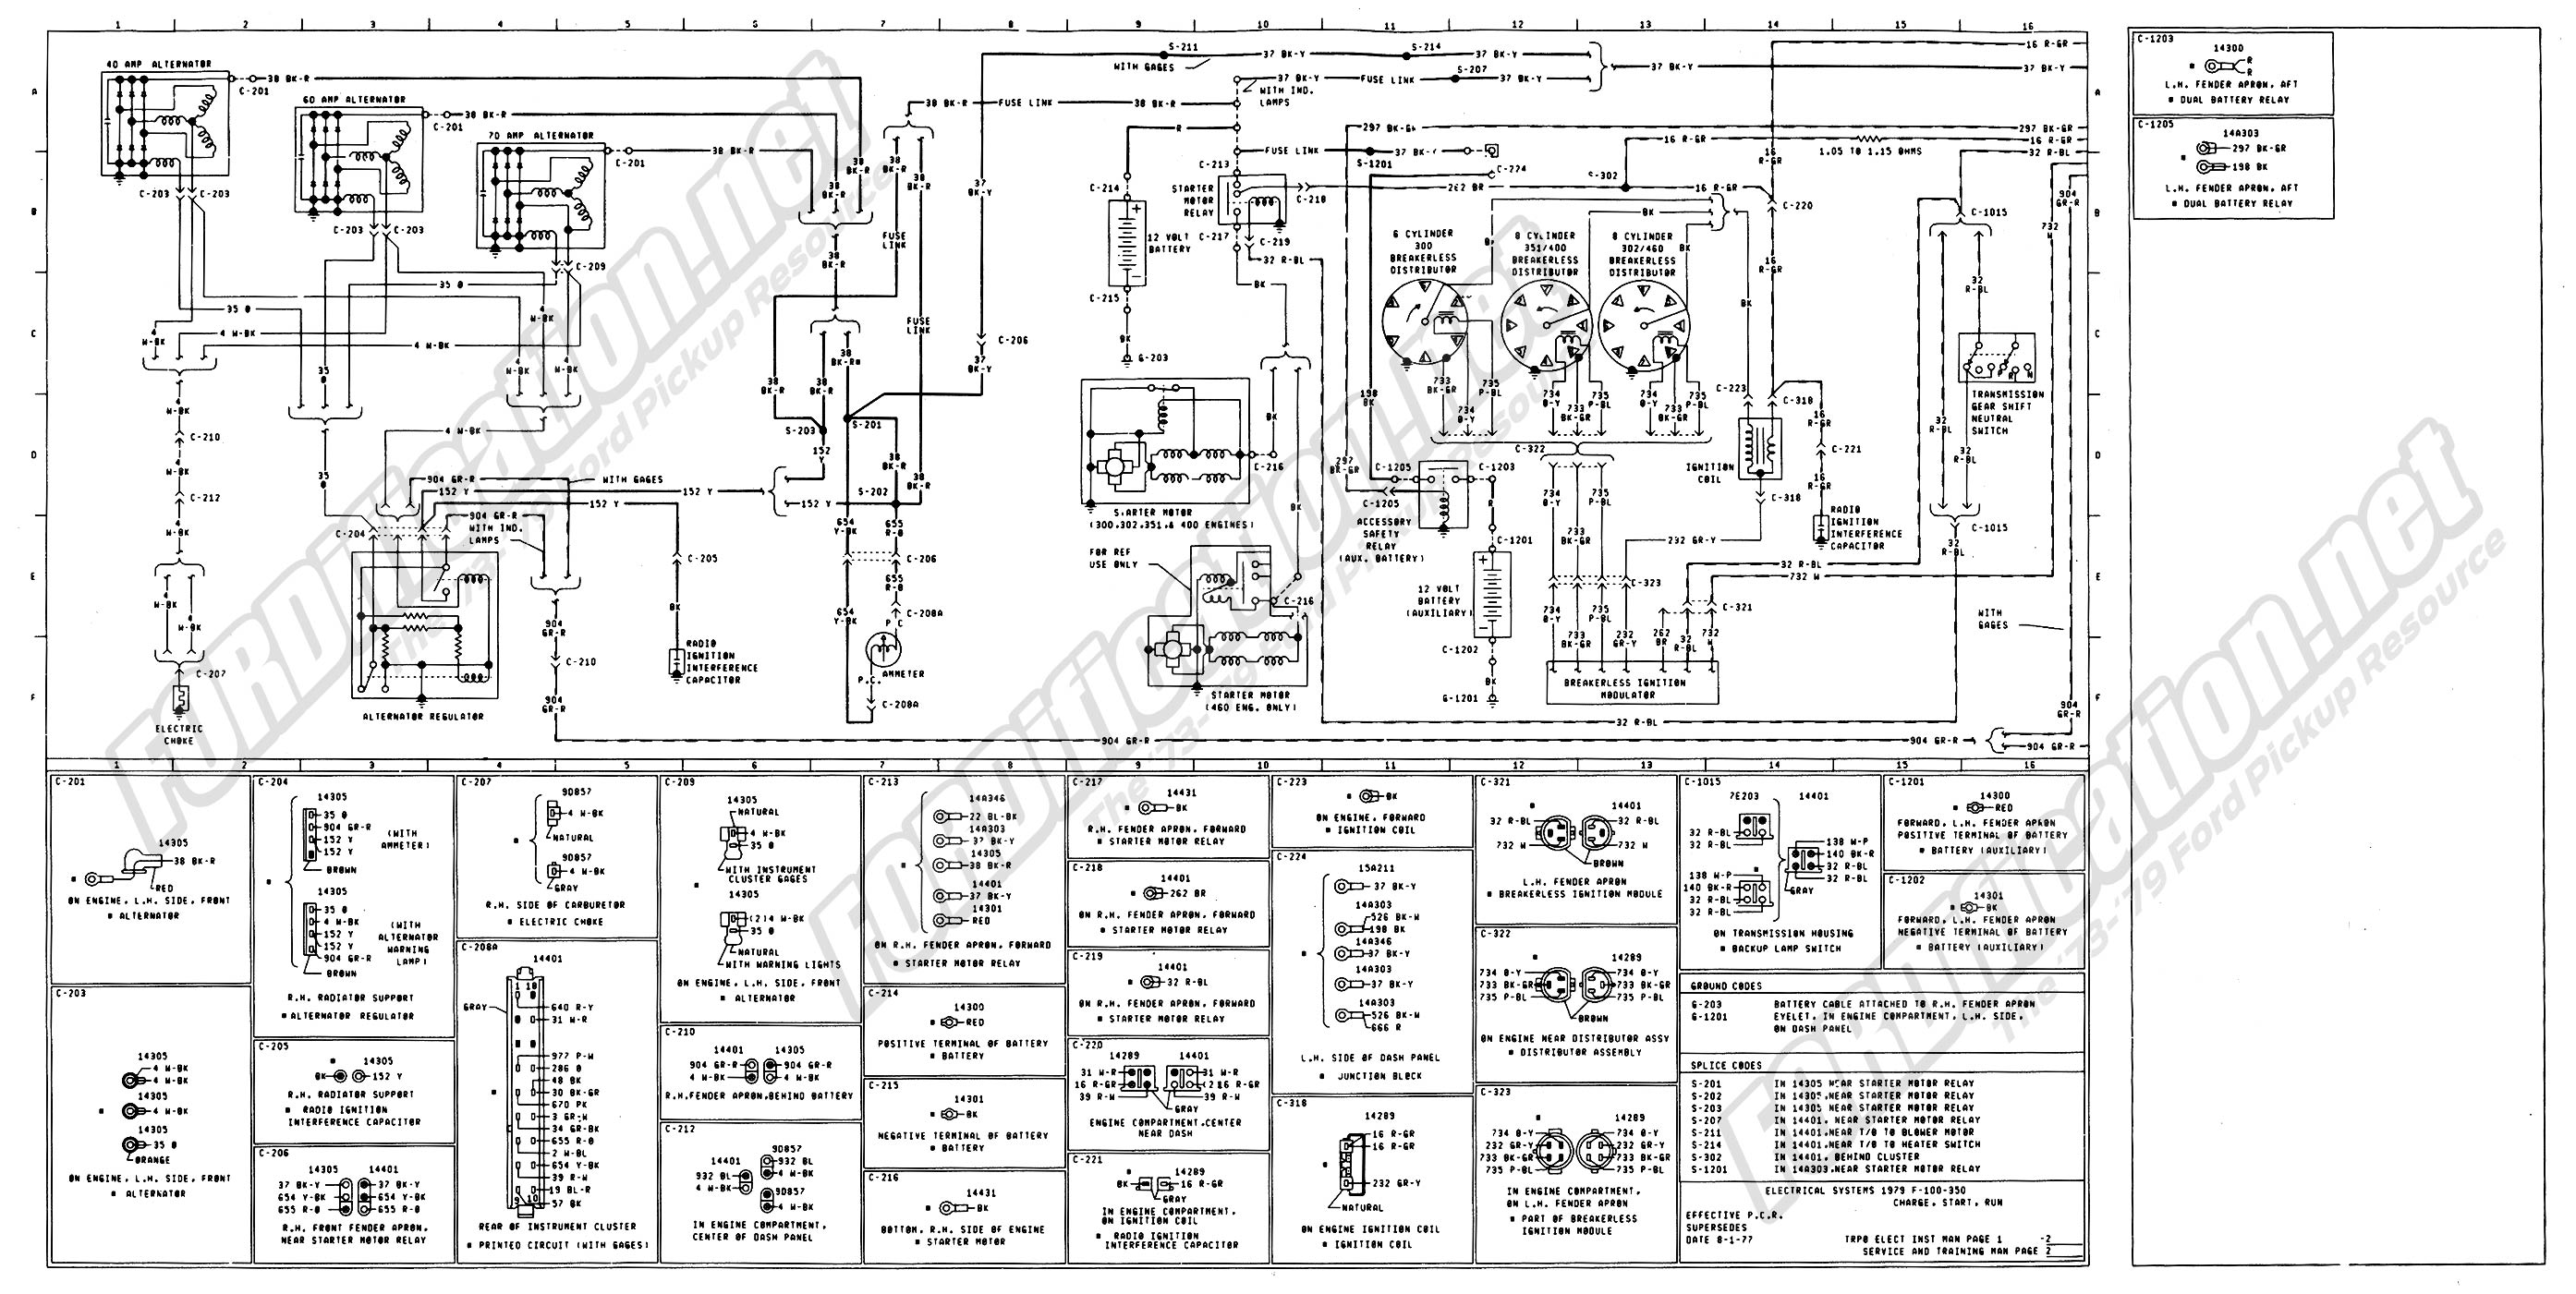 wiring_79master_2of9 1973 1979 ford truck wiring diagrams & schematics fordification net 1999 ford f350 wiring diagram at crackthecode.co